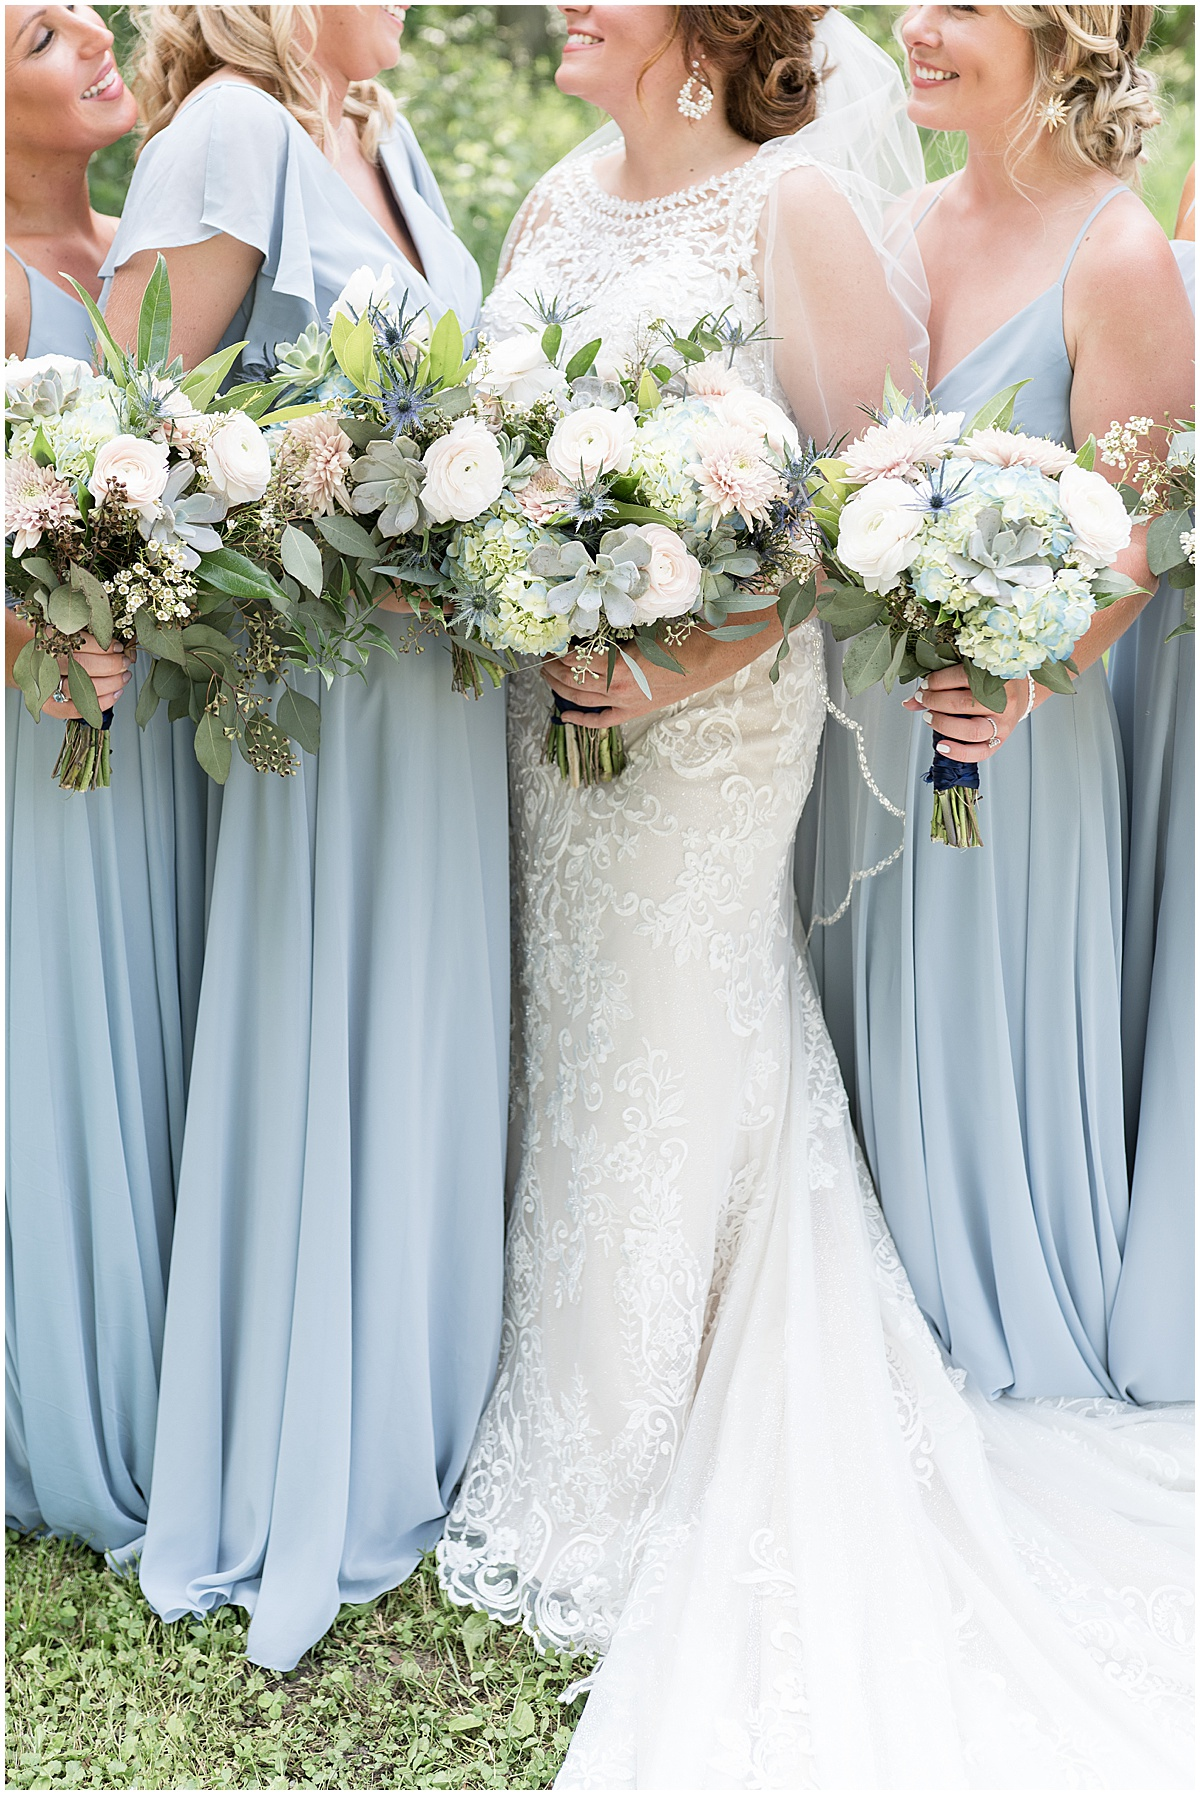 Bridesmaid details at a wedding at The Brandywine in Monticello, Indiana